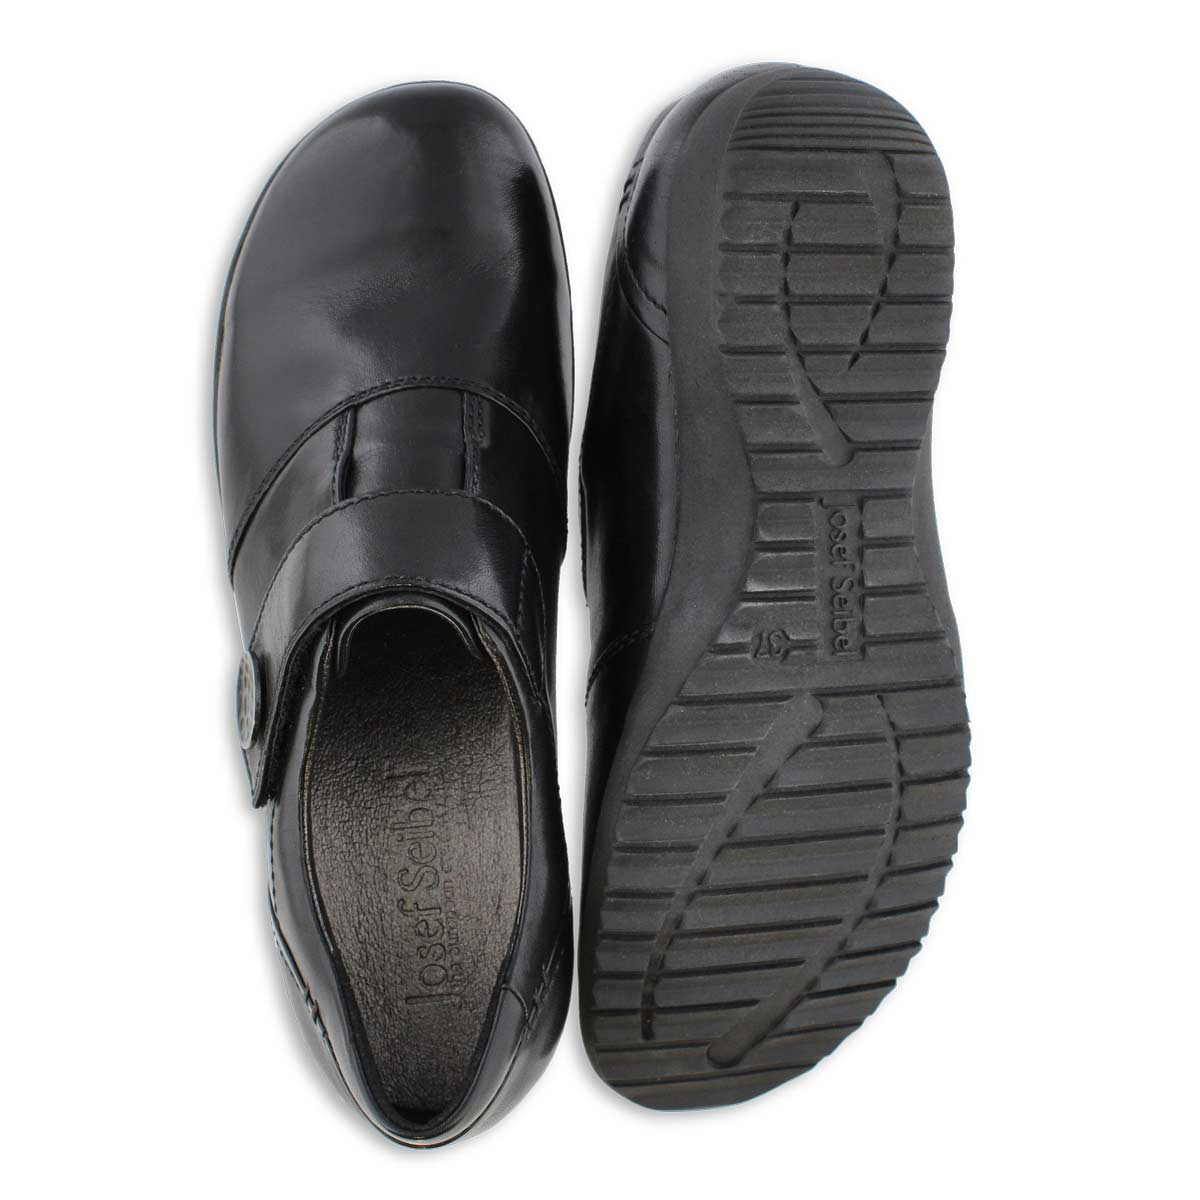 Lds Naly 21 black casual slip on loafer